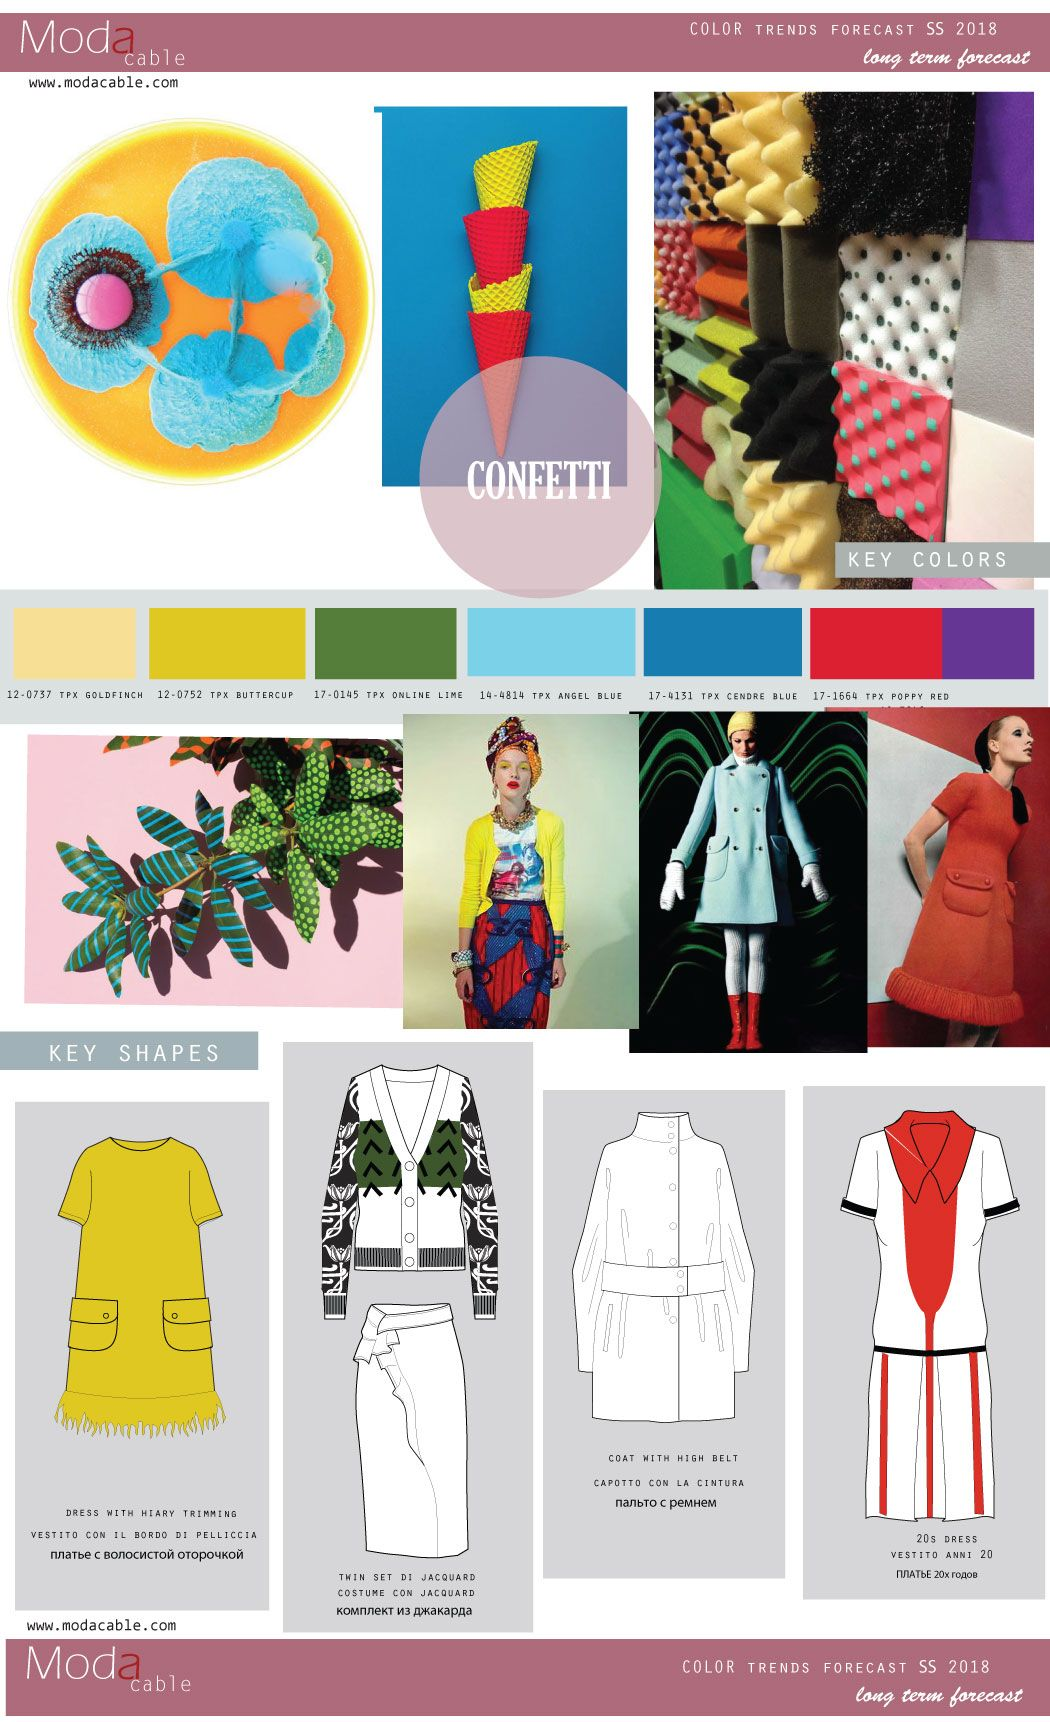 Ss 2018 Fashion Colors 201718 Fashion Trends And Colors